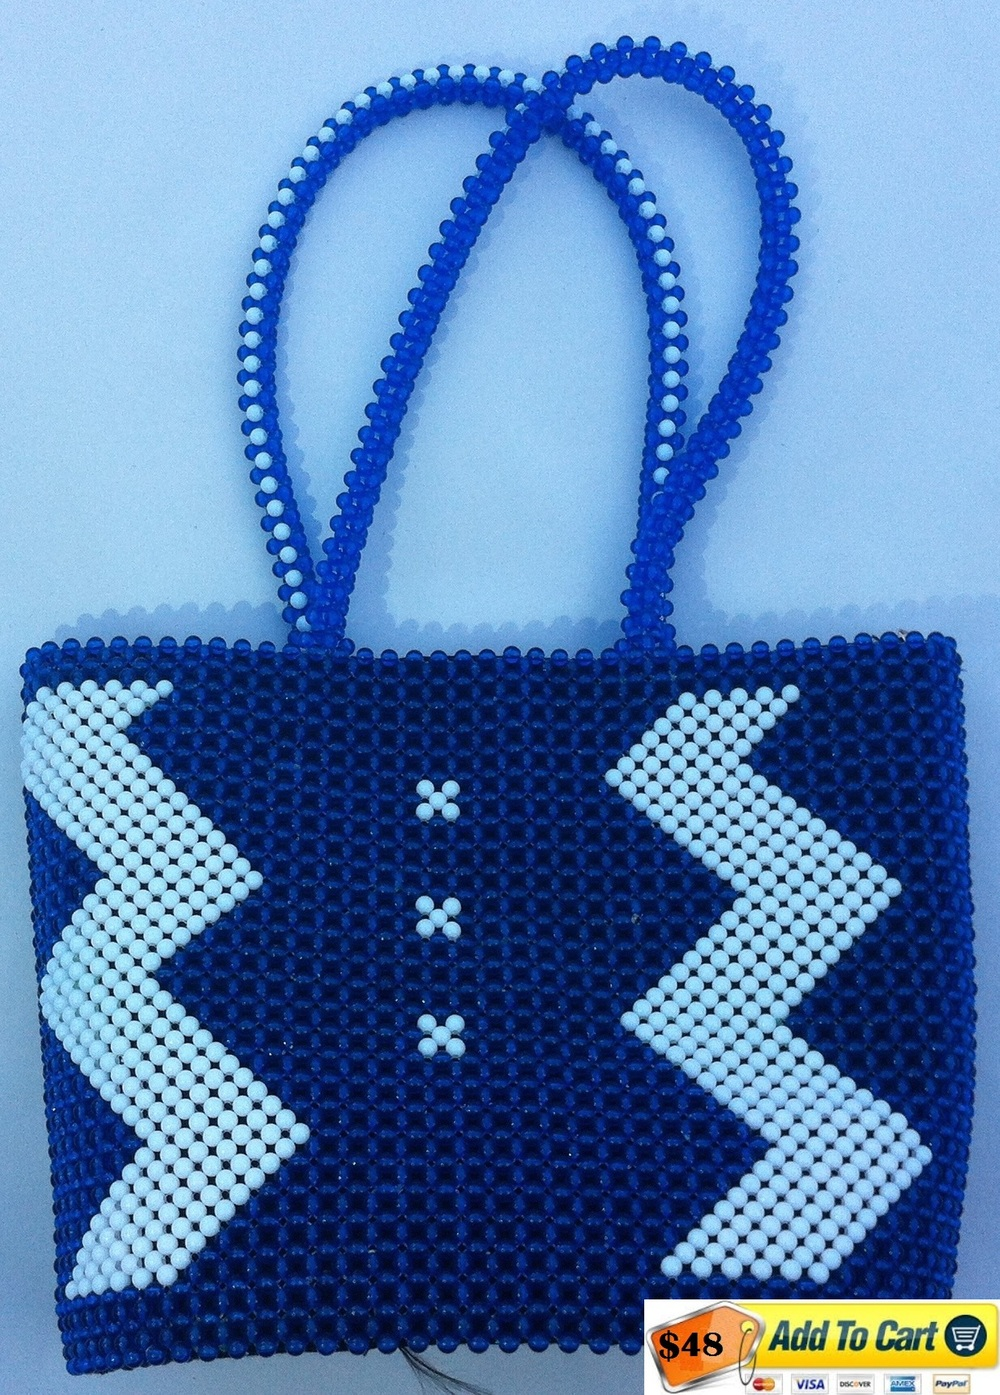 AWB 102. African Women's Bag